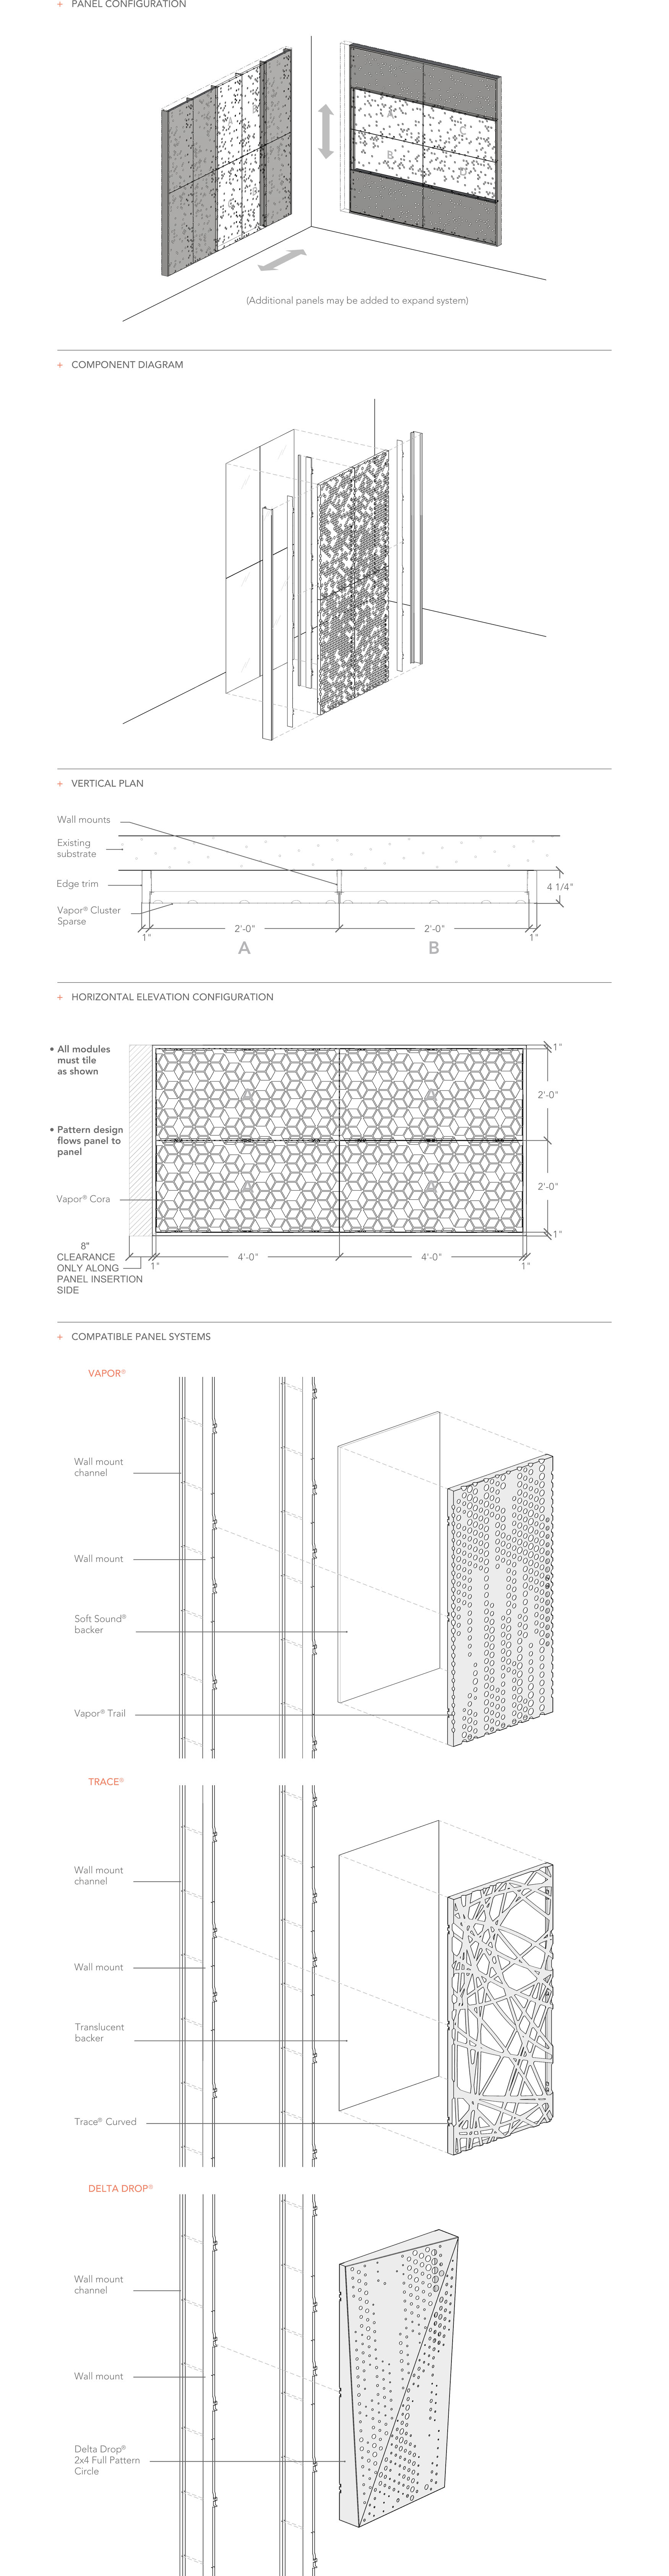 Vapor wall standard wall systems aktura product details pooptronica Choice Image